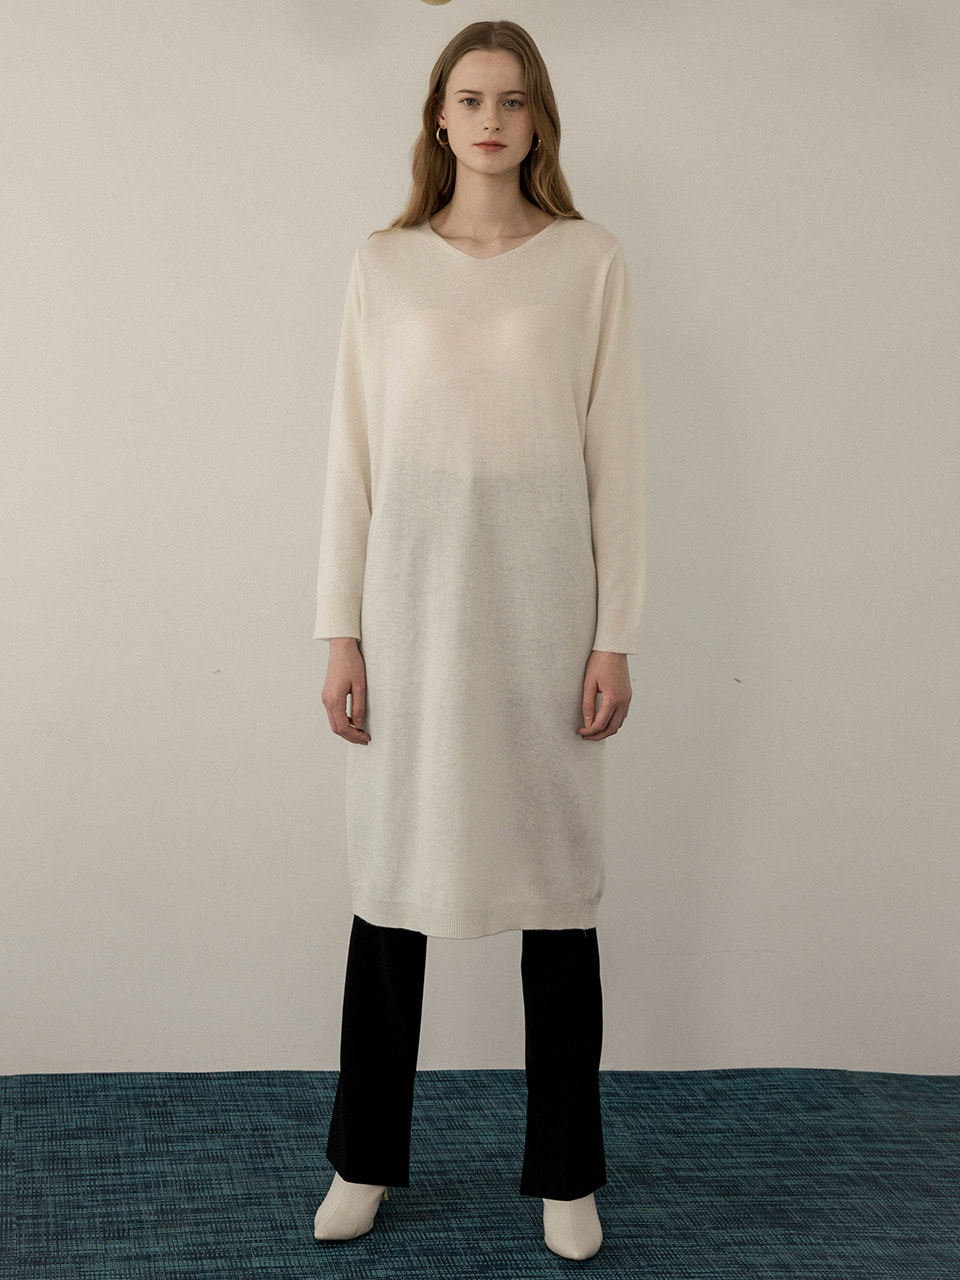 comos'229 v-neck belt set knit dress (ivory)